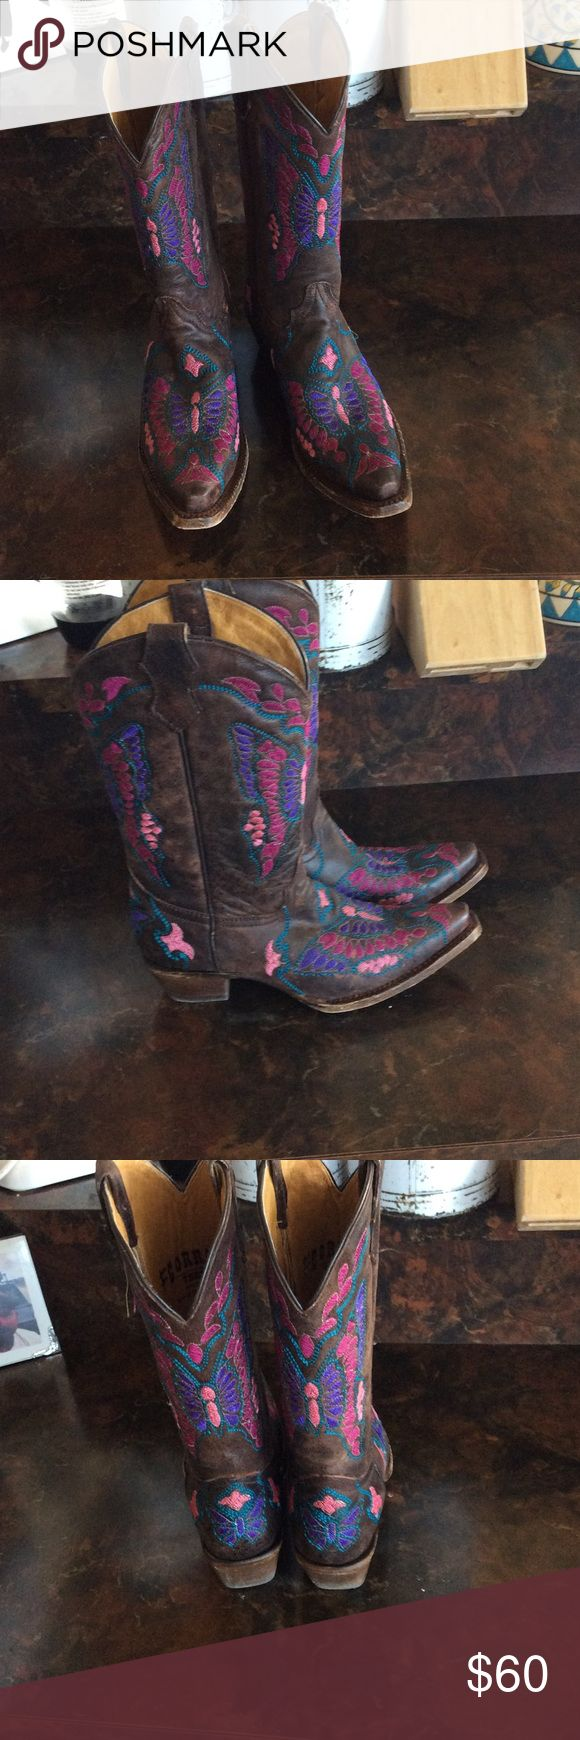 Butterfly Corral boots Gorgeous butterfly embroidered cowboy boots . EUC re-poshing as I just don't wear them. Worn by previous owner maybe 1-2 times and only once by me. Size 5 Teen, but fits women's 7 perfectly.Purple and pink. Corral Shoes Heeled Boots